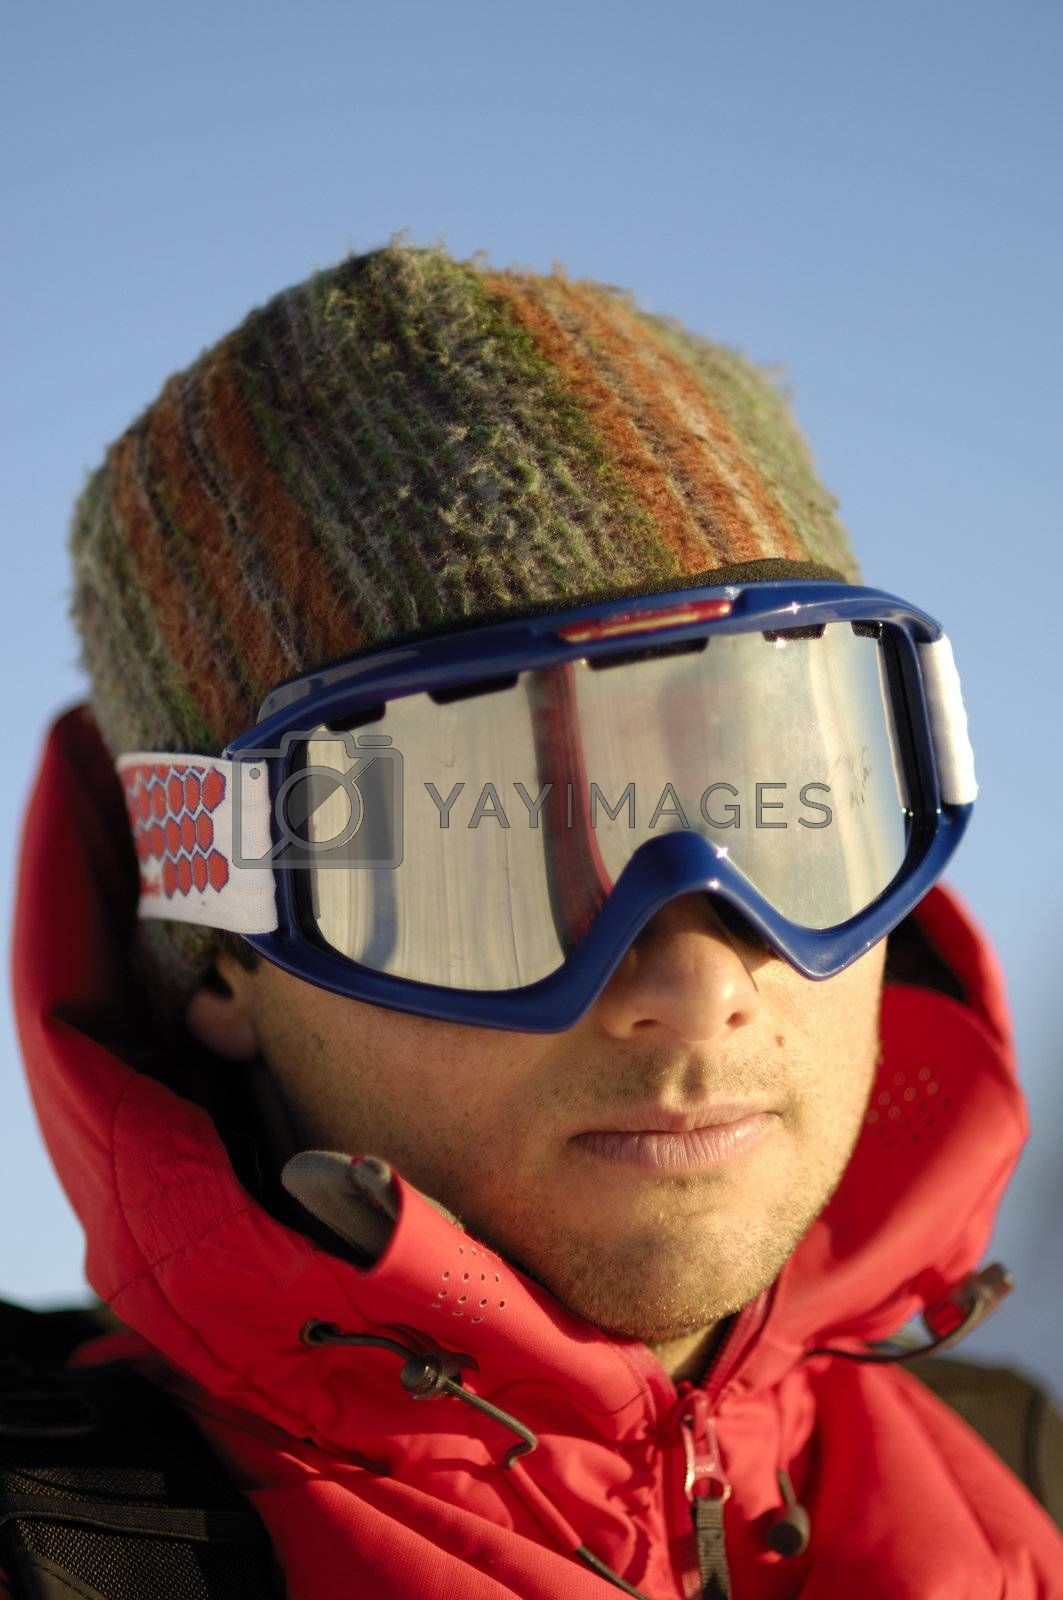 Ski expedition by swimnews